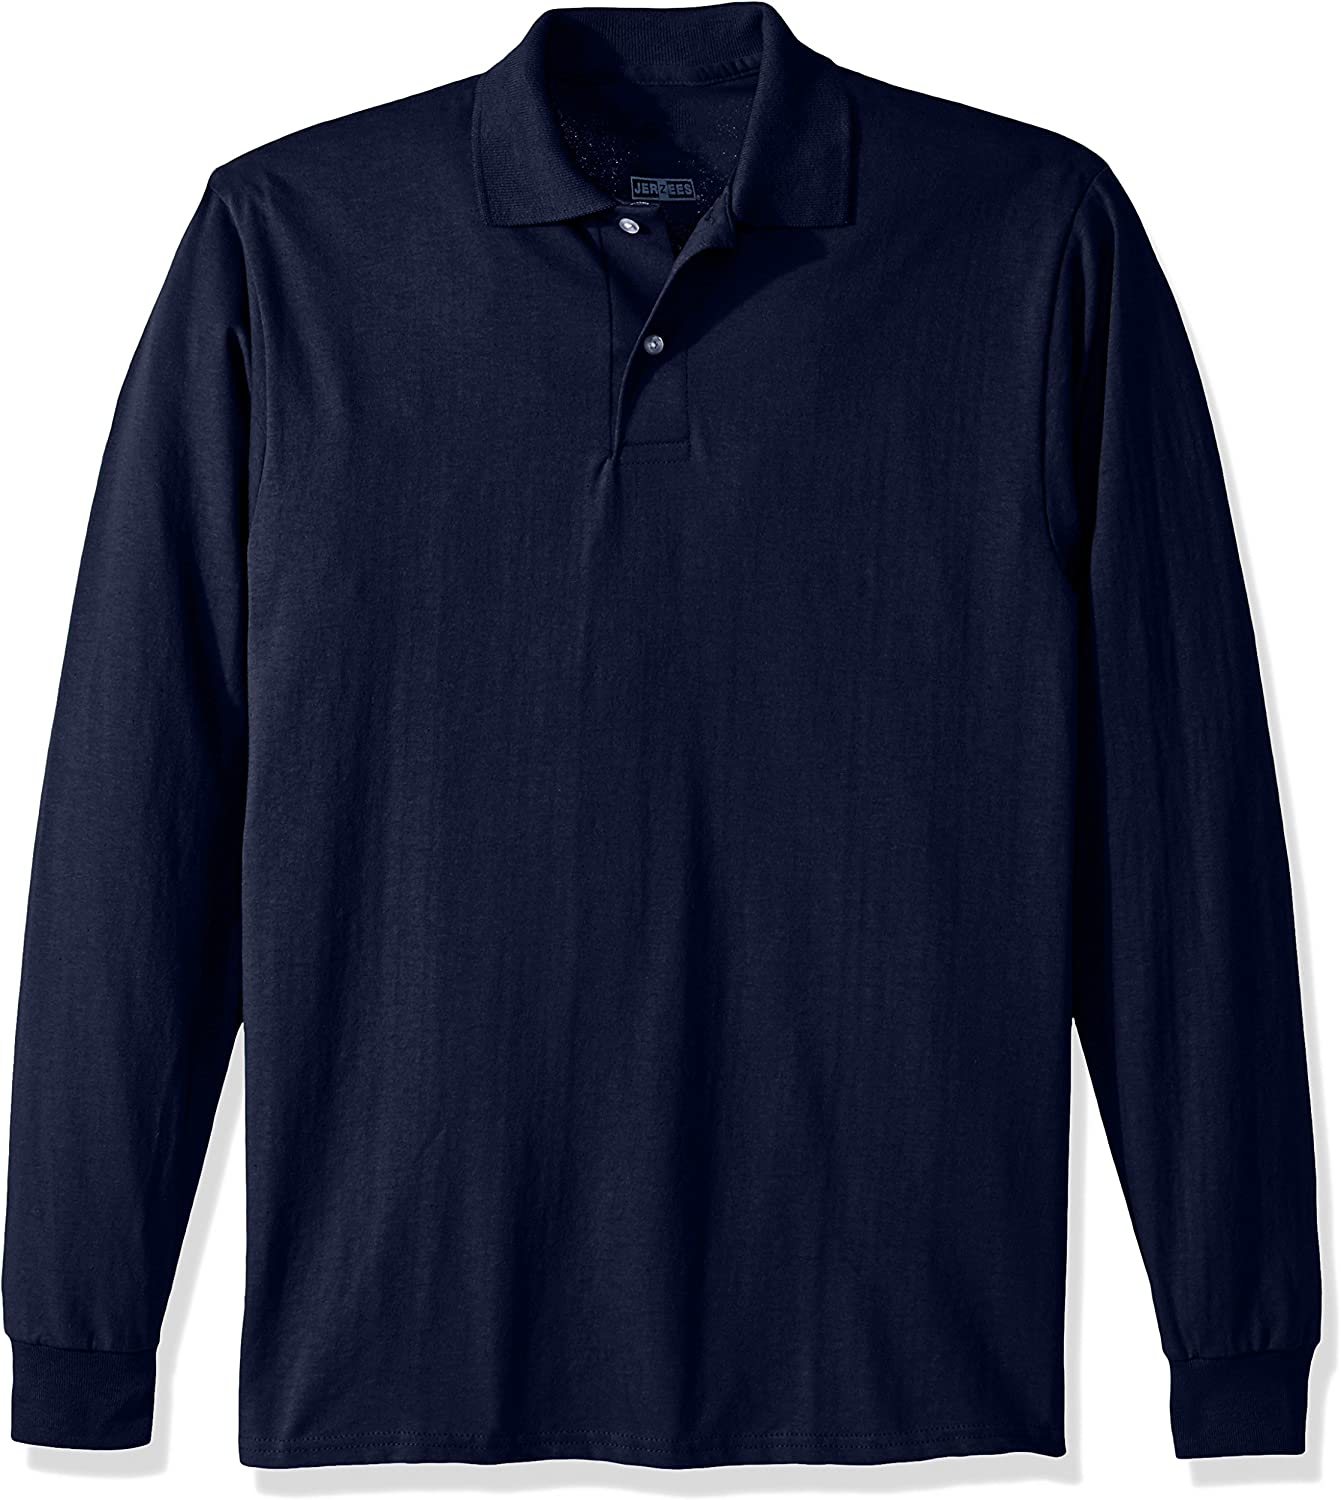 Jerzees Men's SpotShield Stain Resistant Polo Shirts (Short & Long Sleeve) at  Men's Clothing store